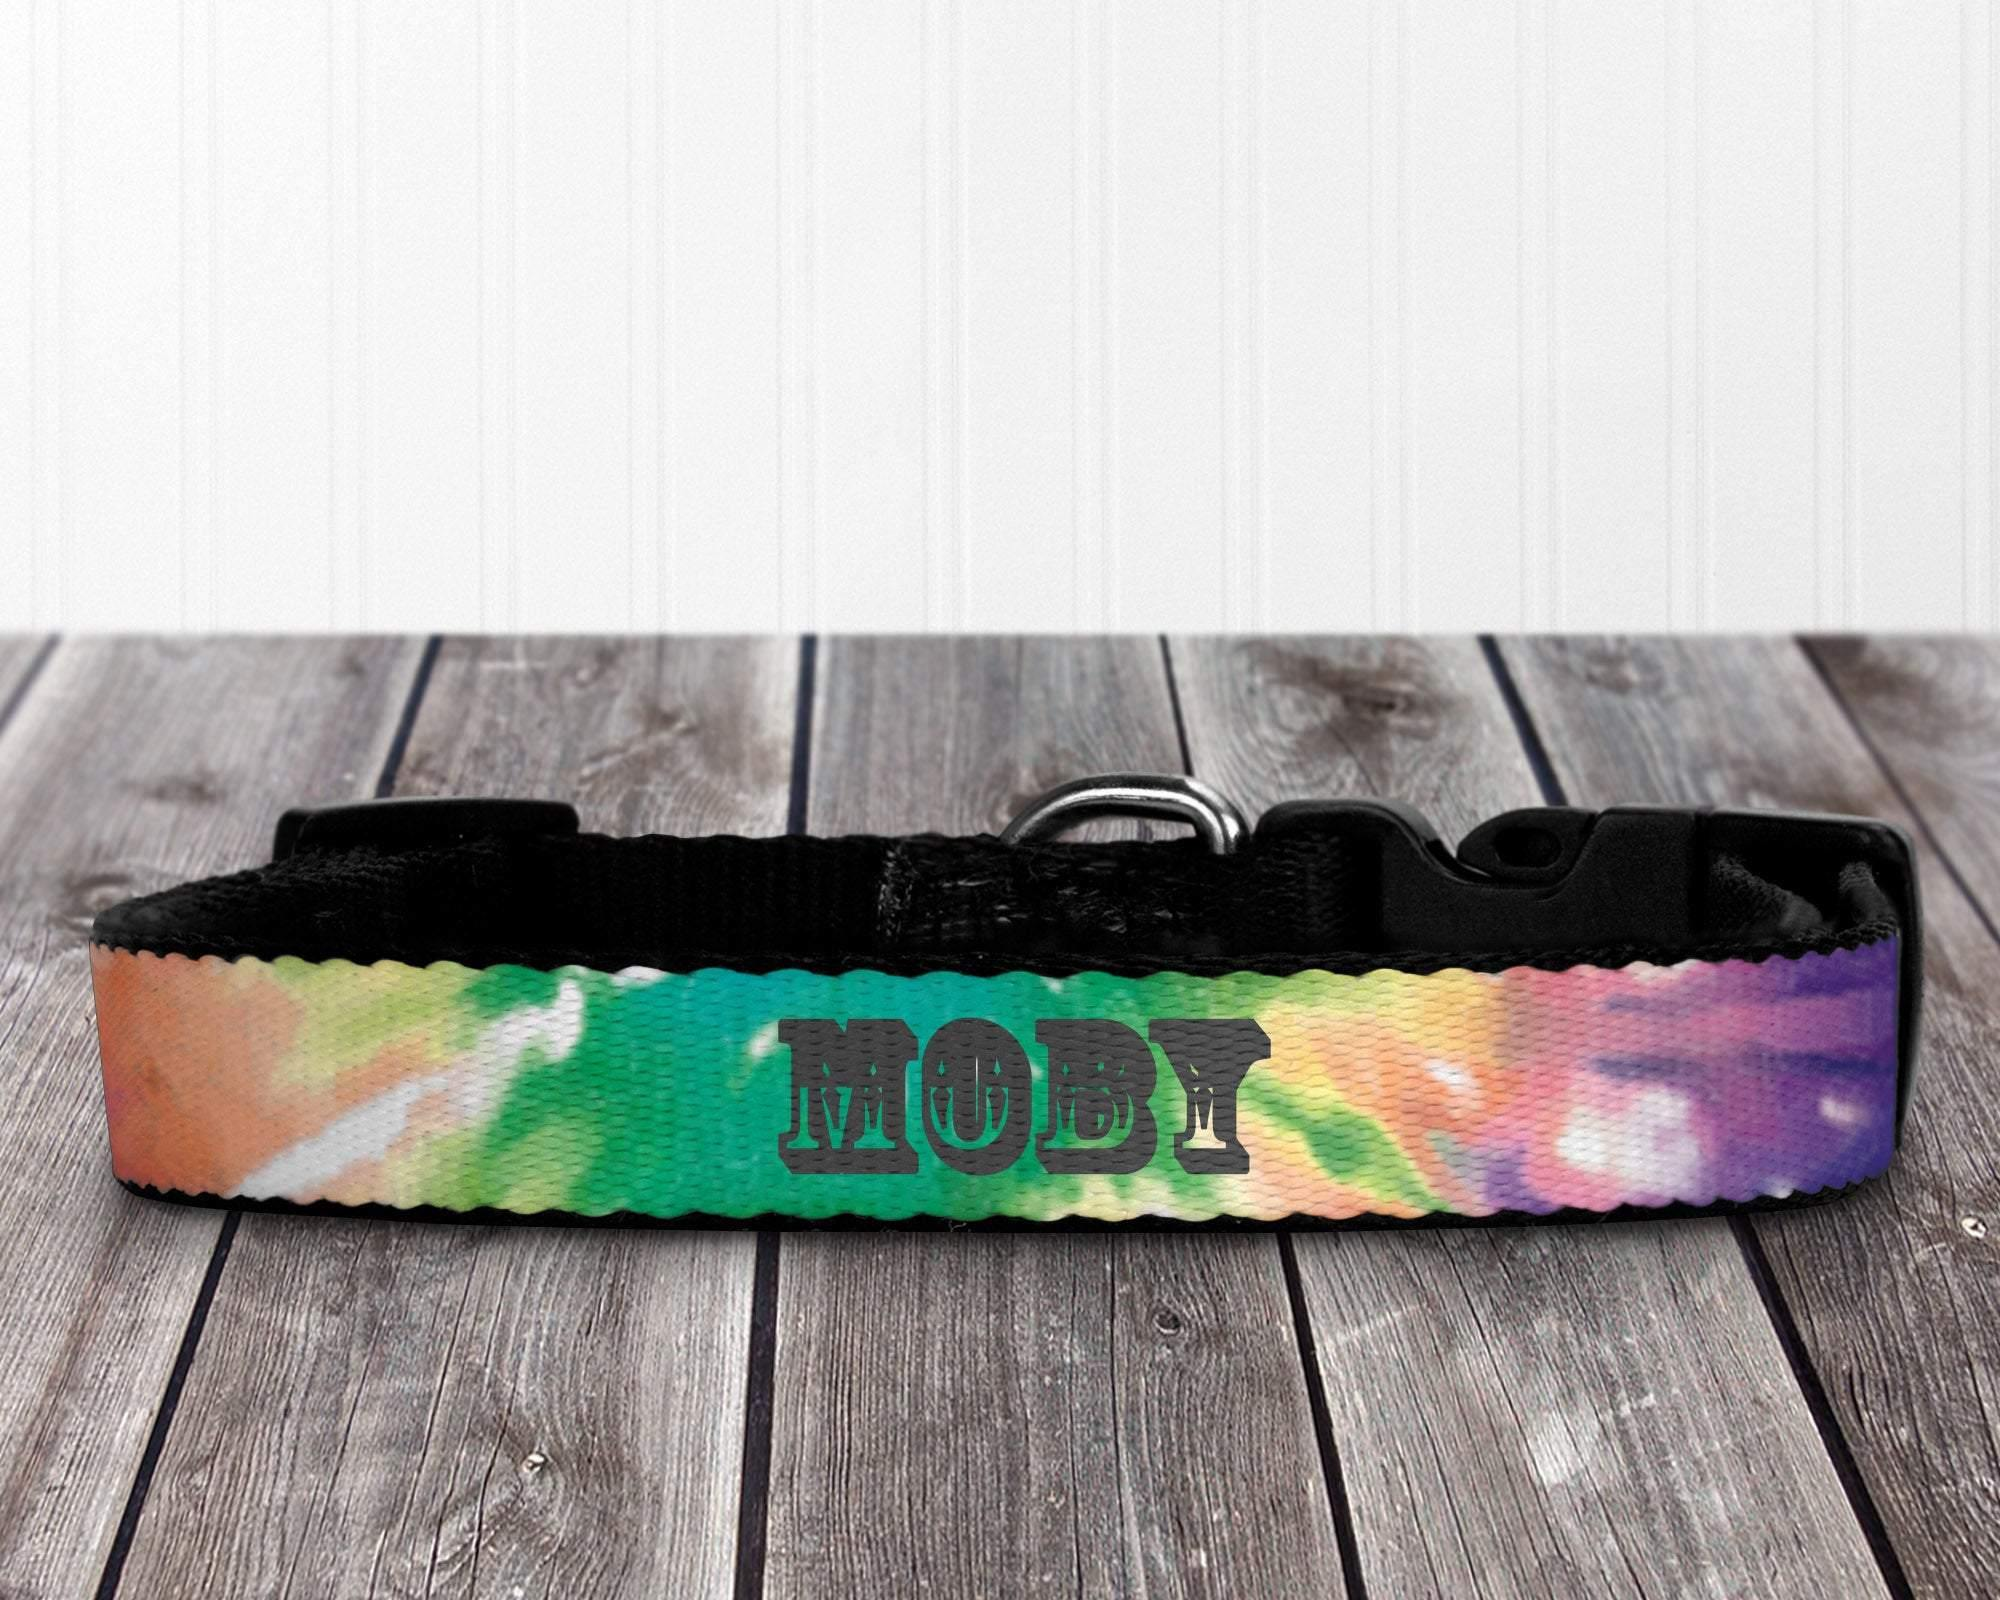 Pet Collars & Jewelry | Personalized Pet Collar | Custom Pet Collar | Pet Accessories | Tie Dye | This and That Solutions | Personalized Gifts | Custom Home Décor